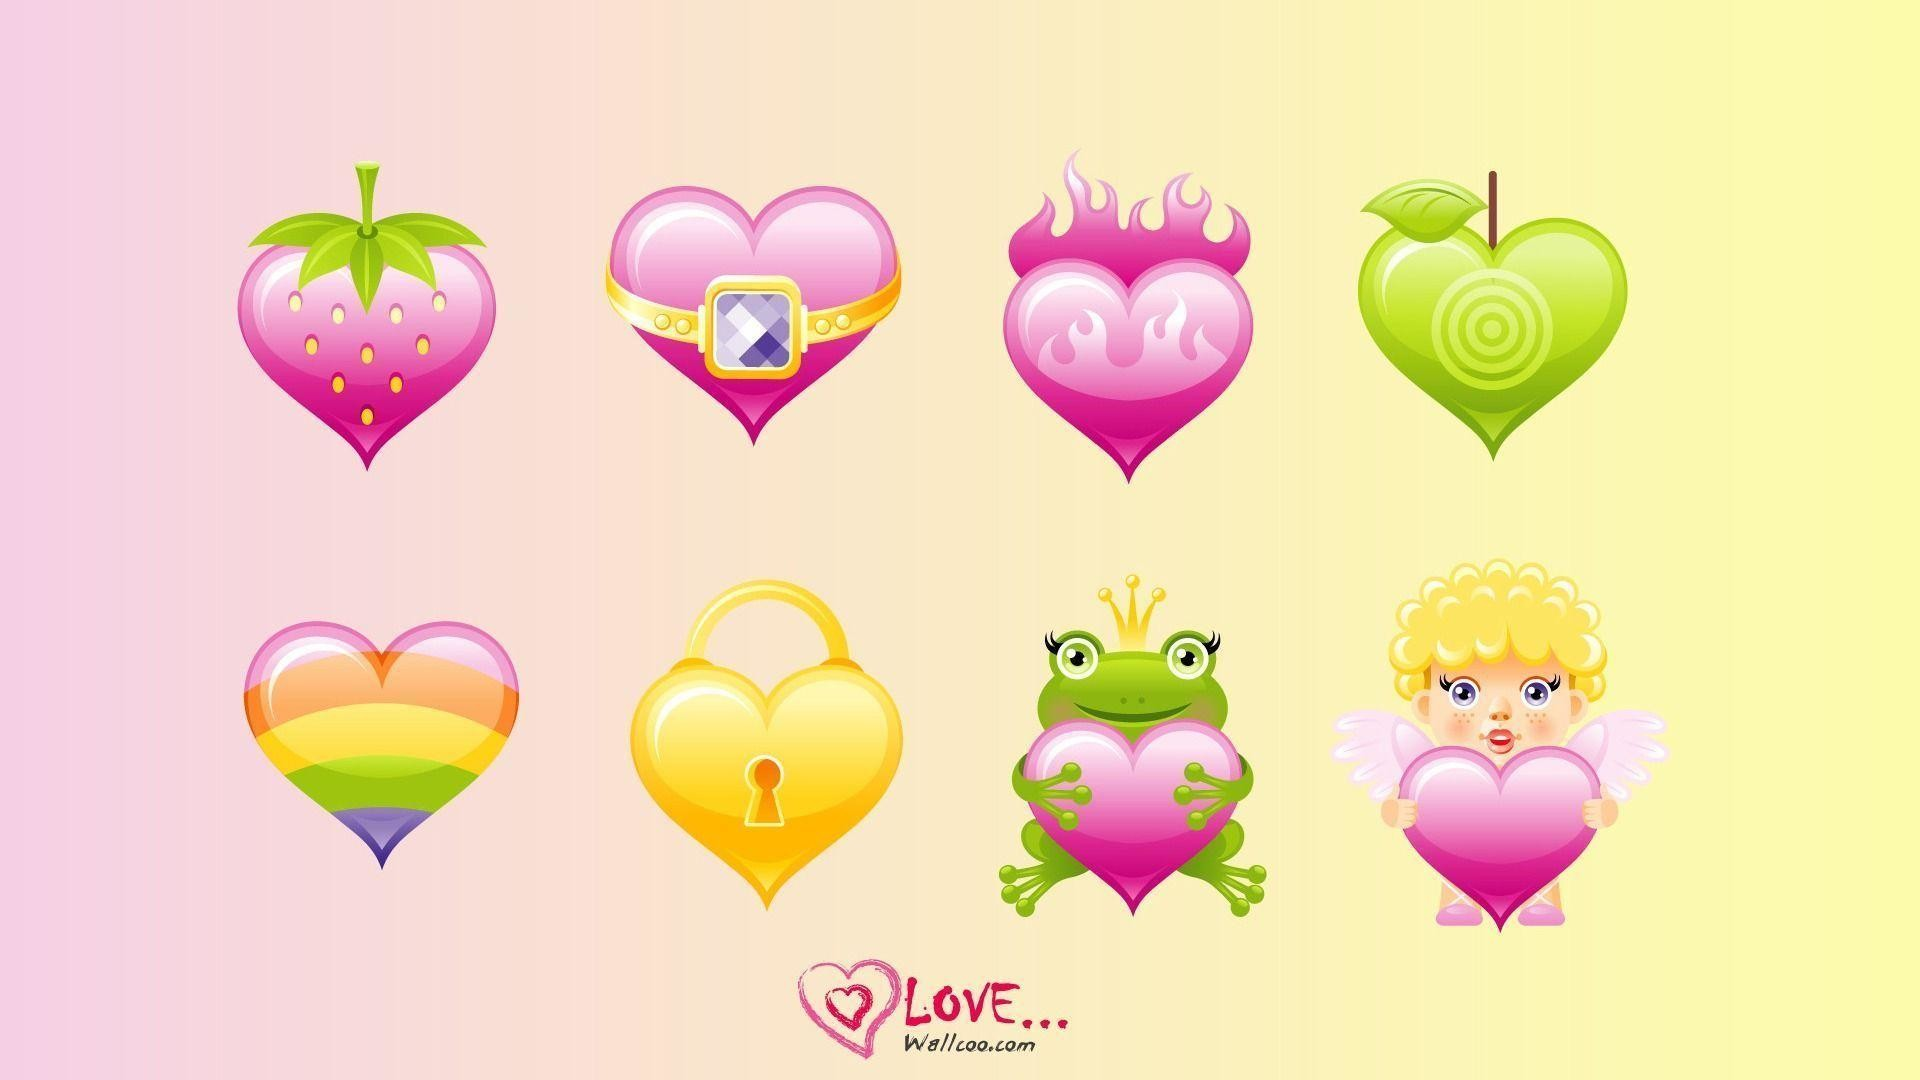 1920x1080 Free Download cute hearts backgrounds love wallpaper with original .